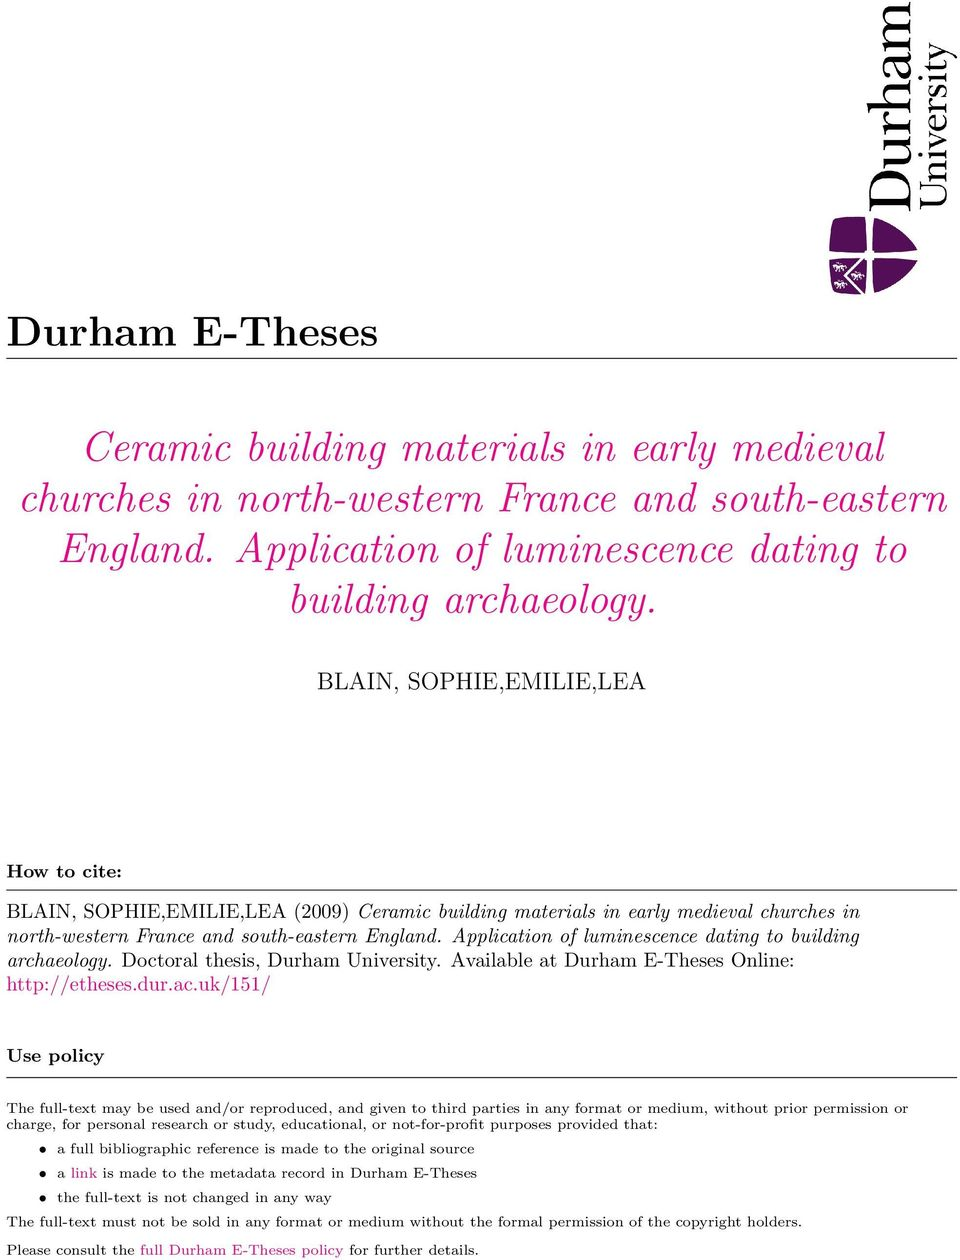 Application of luminescence dating to building archaeology. Doctoral thesis, Durham University. Available at Durham E-Theses Online: http://etheses.dur.ac.